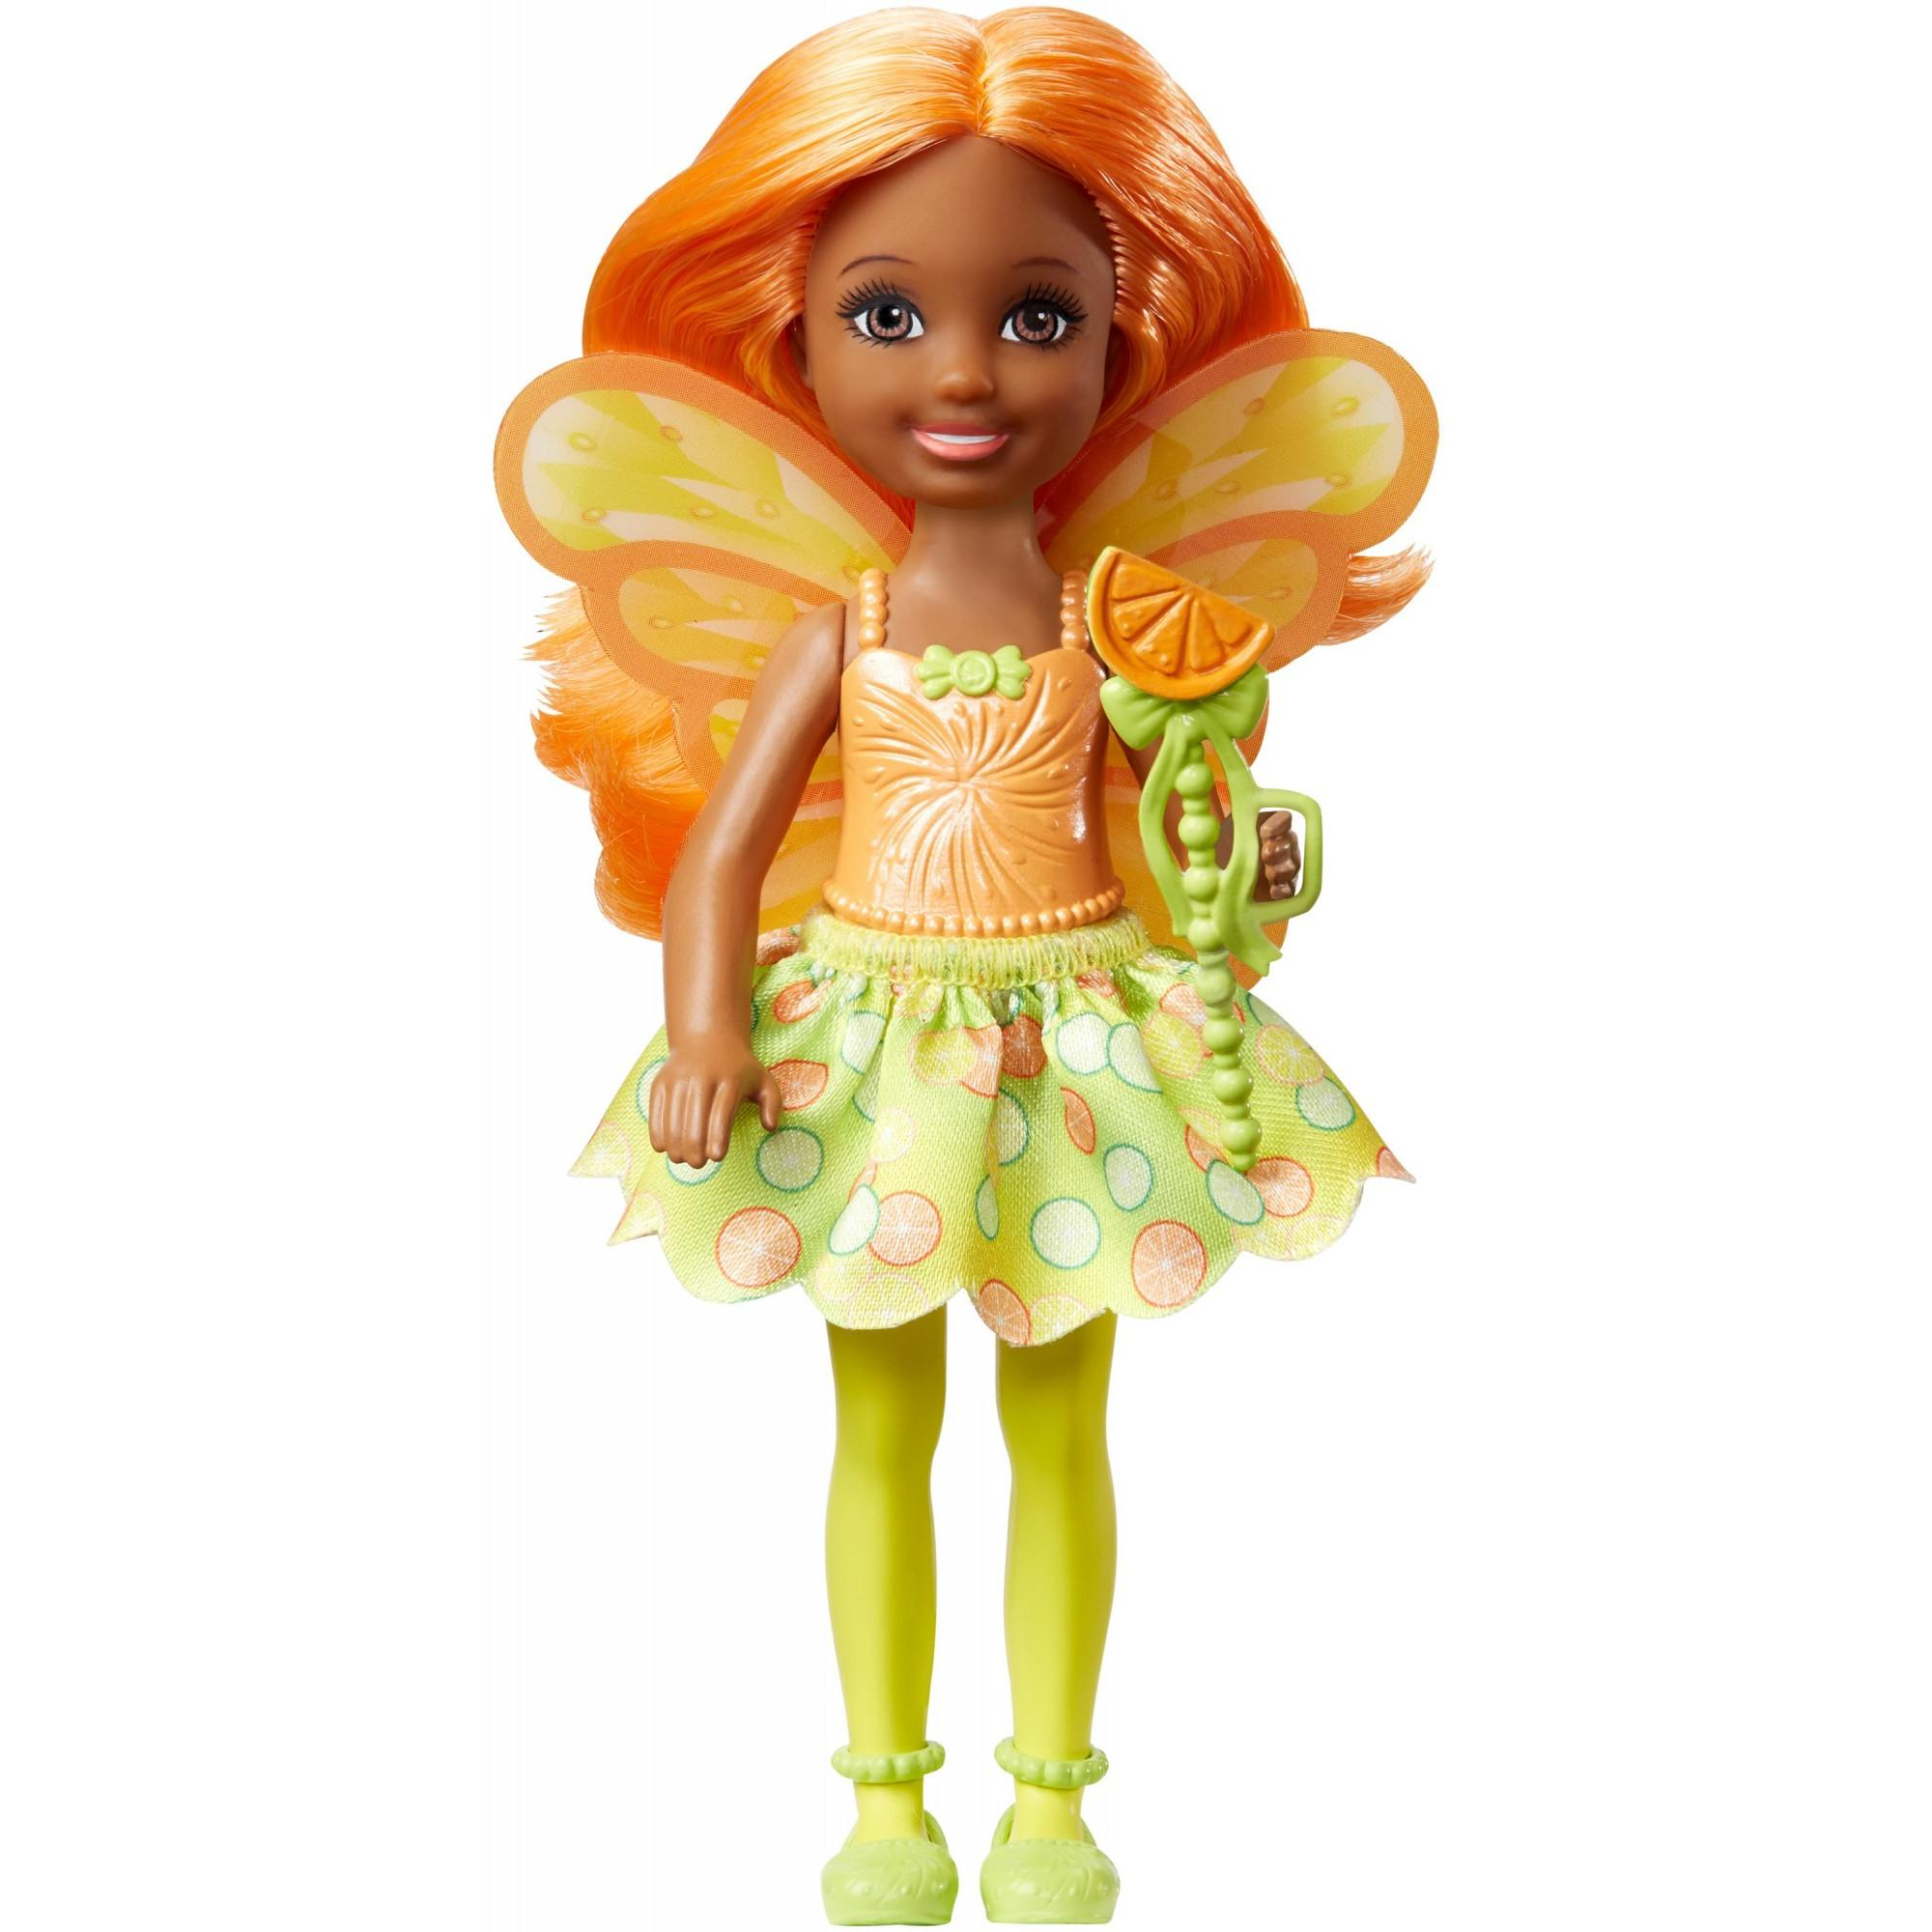 Barbie Dreamtopia Small Fairy Doll Citrus Theme by Mattel